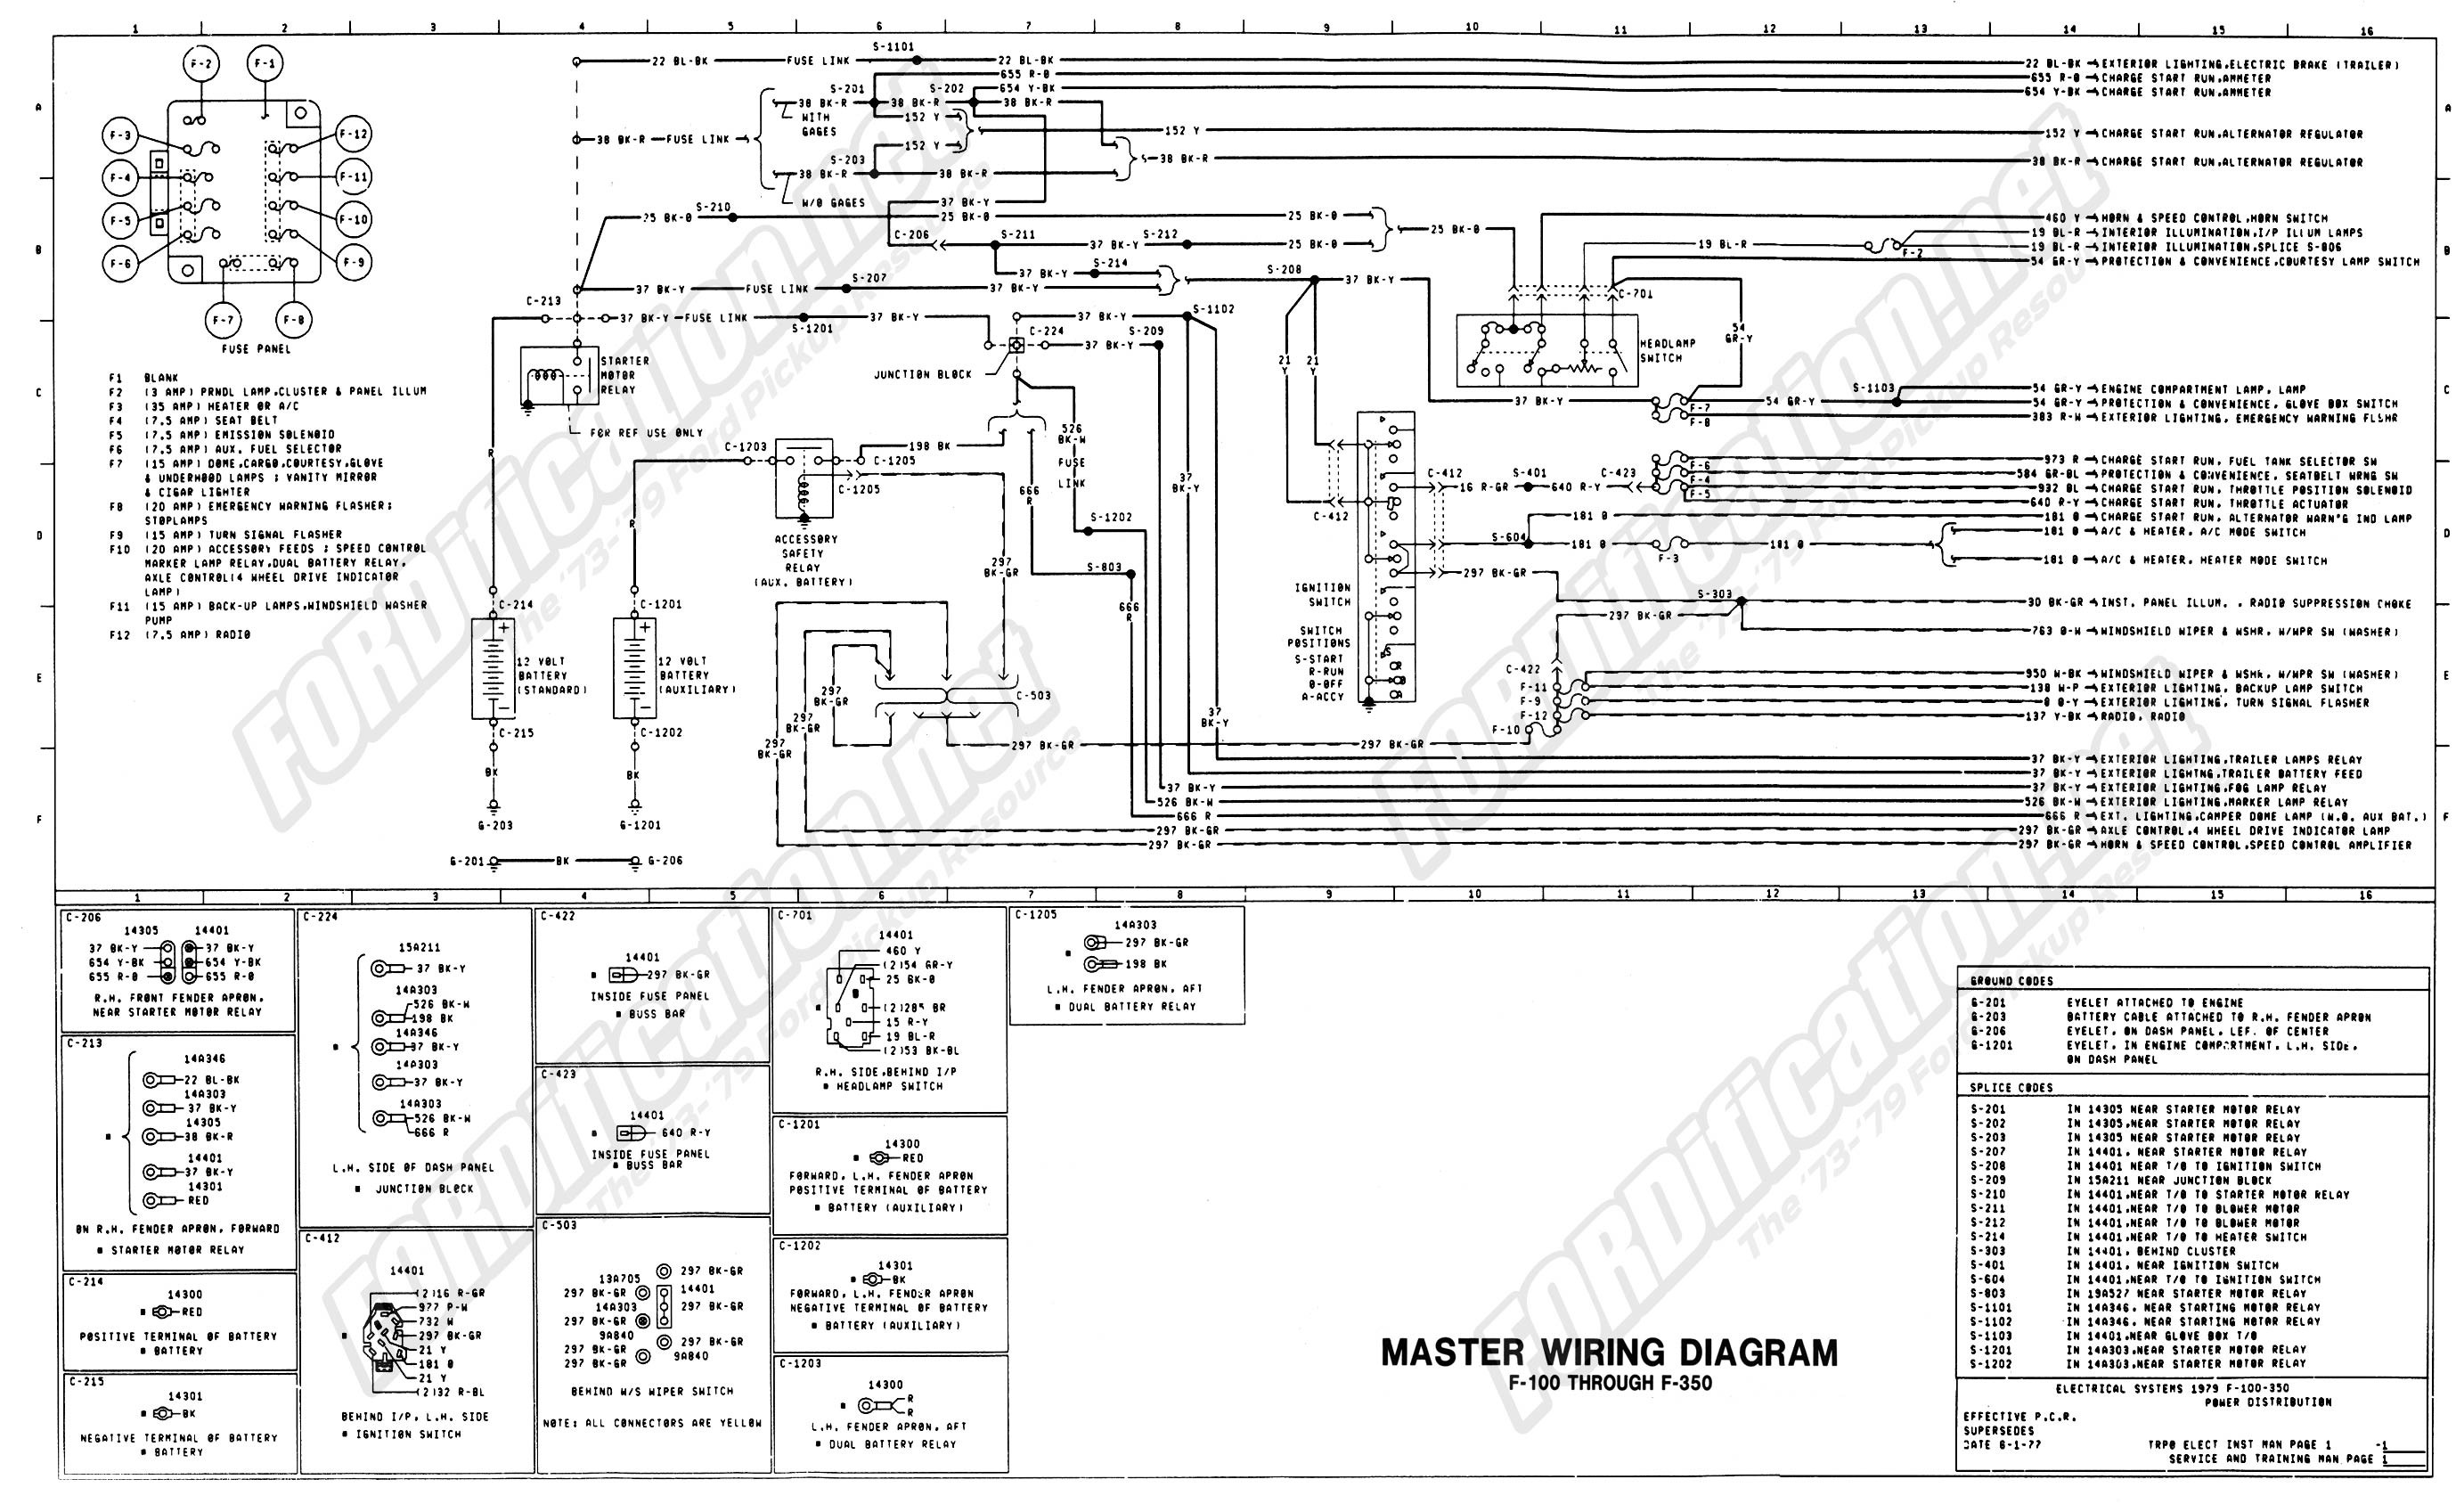 1986 ford F150 Engine Wiring Diagram 1986 ford F150 Engine